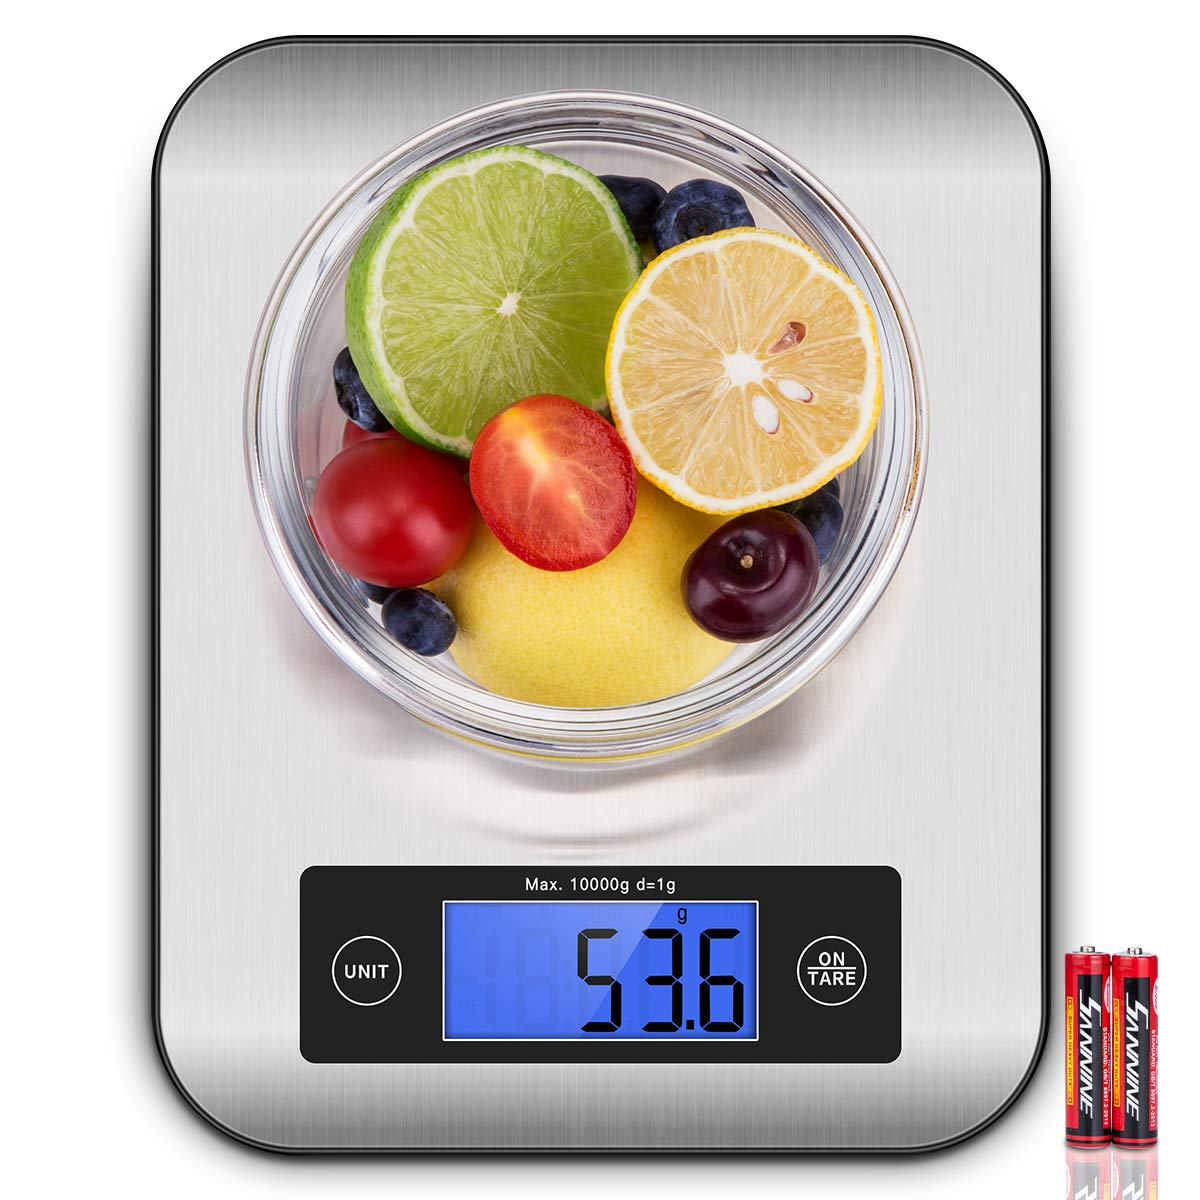 Digital Kitchen Scale, CUSIBOX Multifunction Stainless Steel Food Scales with LCD Display and Tare Function for Baking and Cooking, 22Ib 10kg